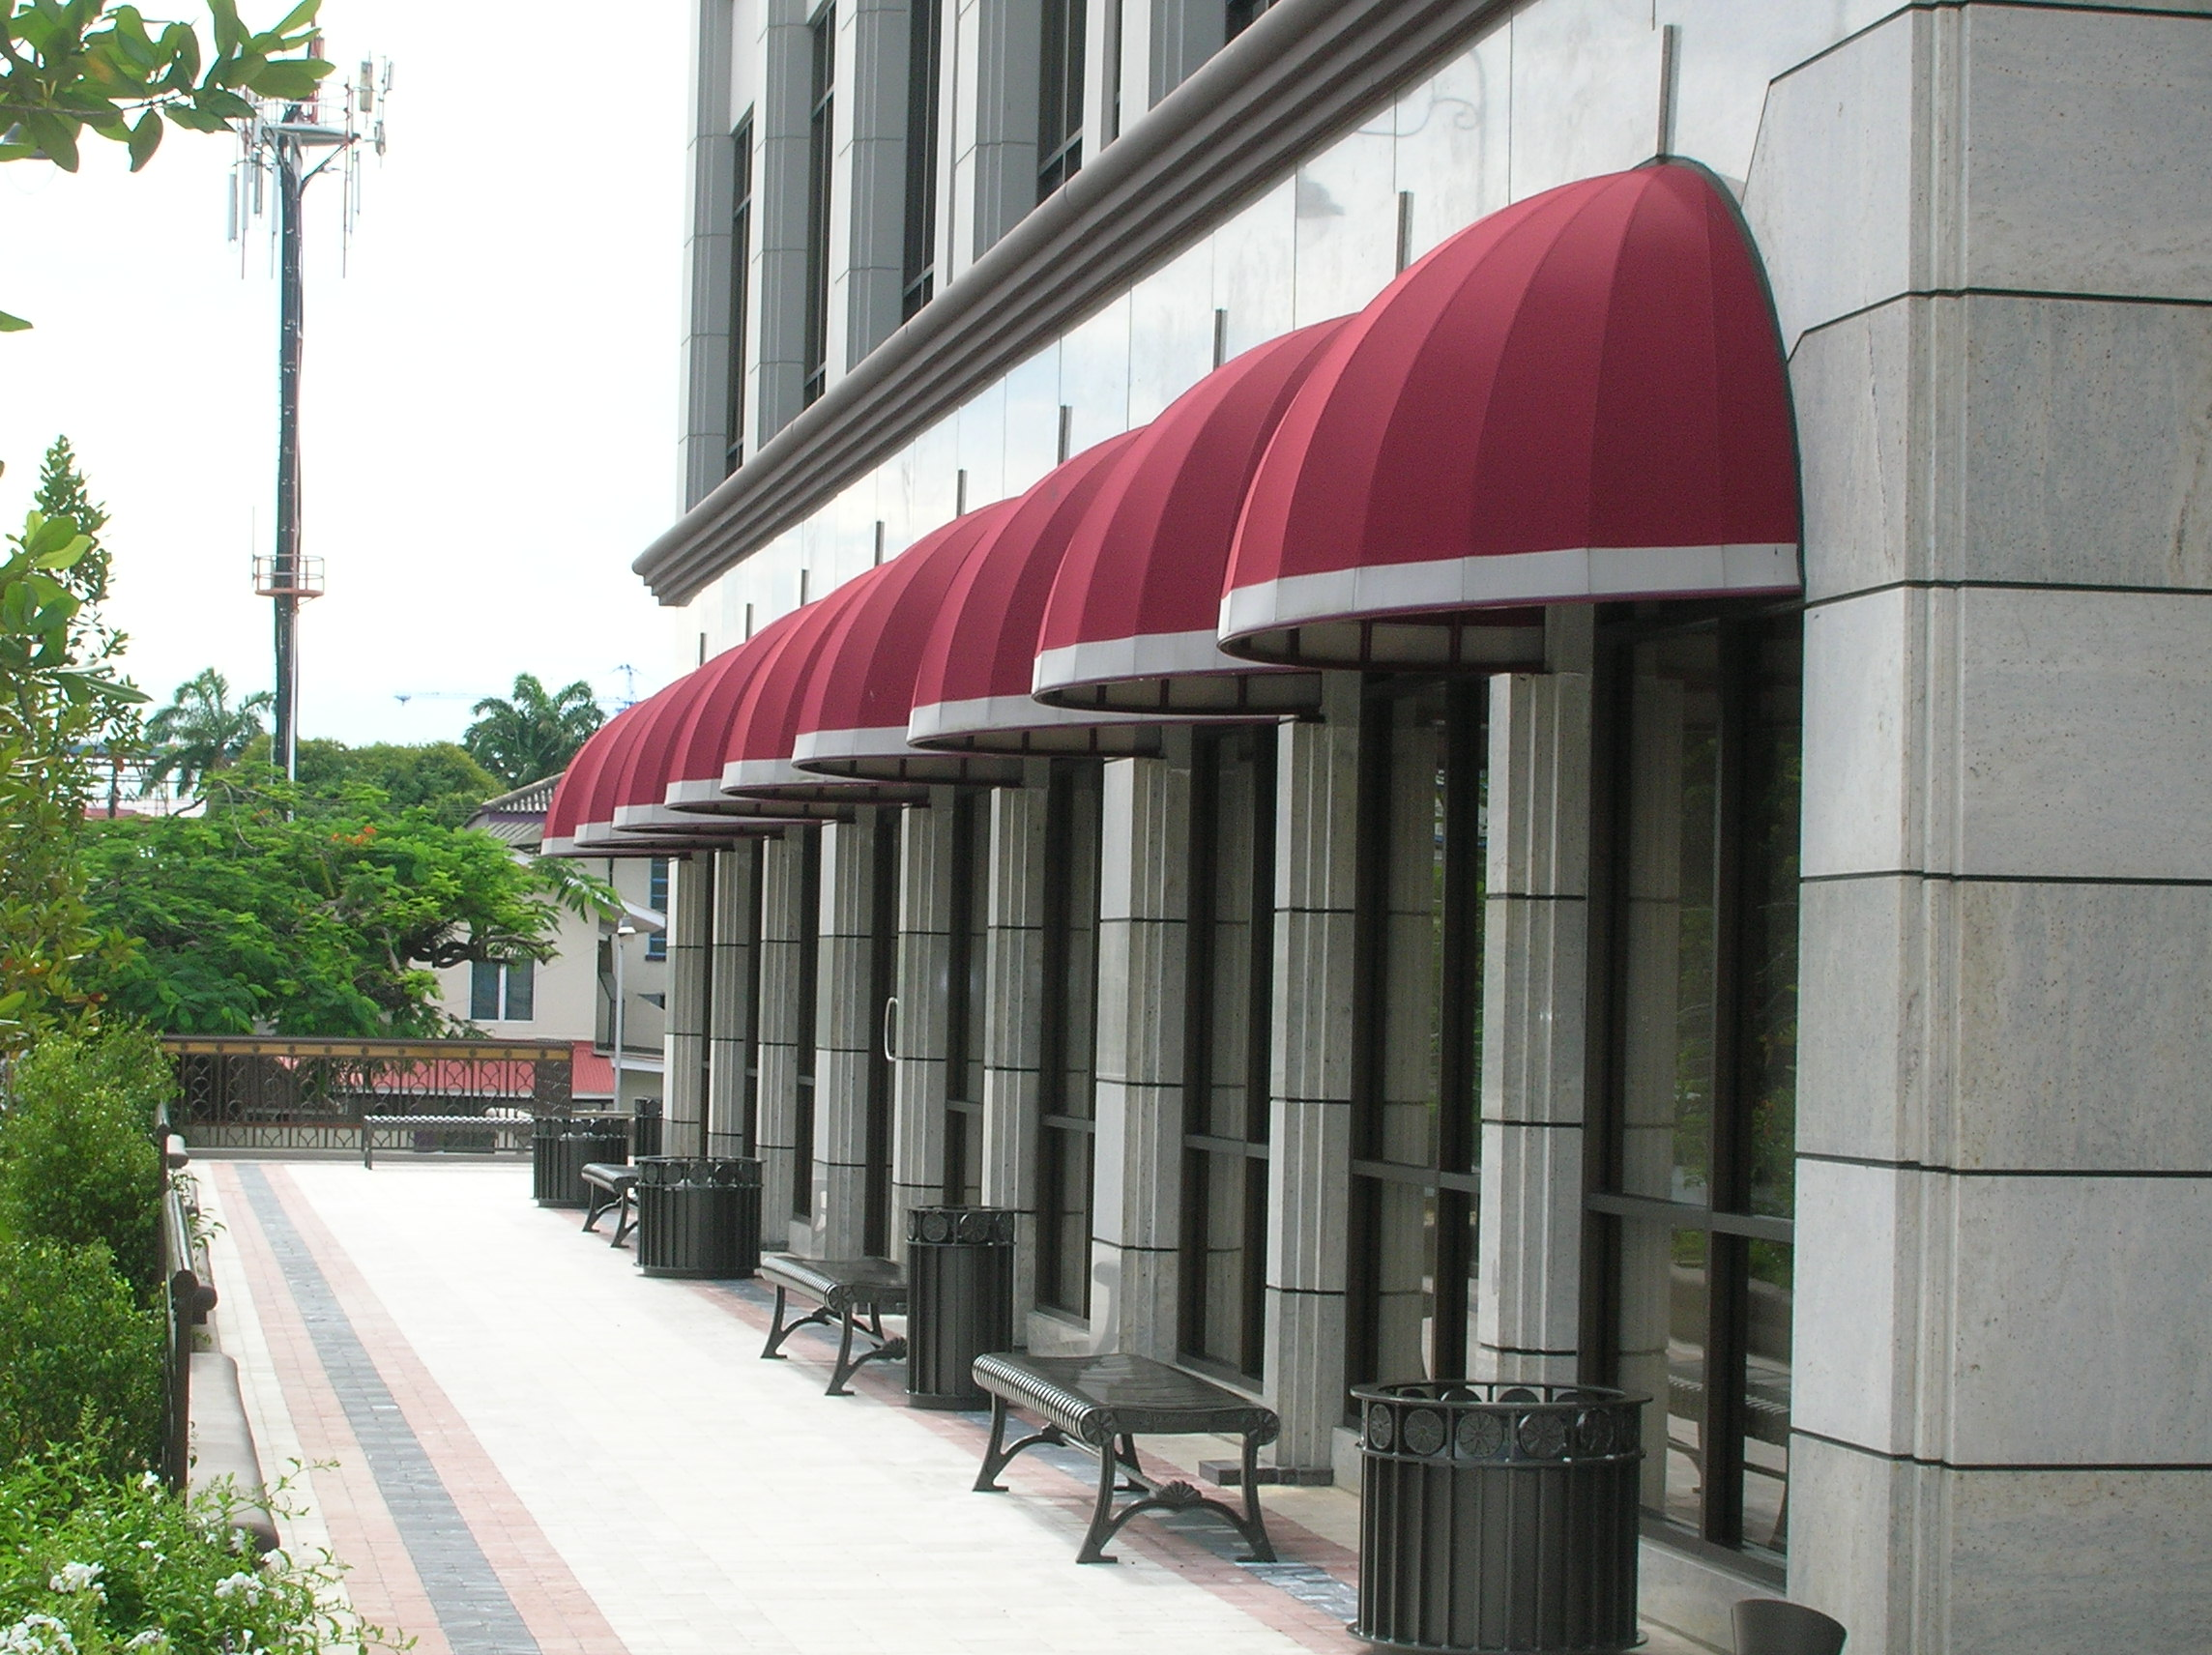 Canopies And Tarps : Awnings canopies types and designs